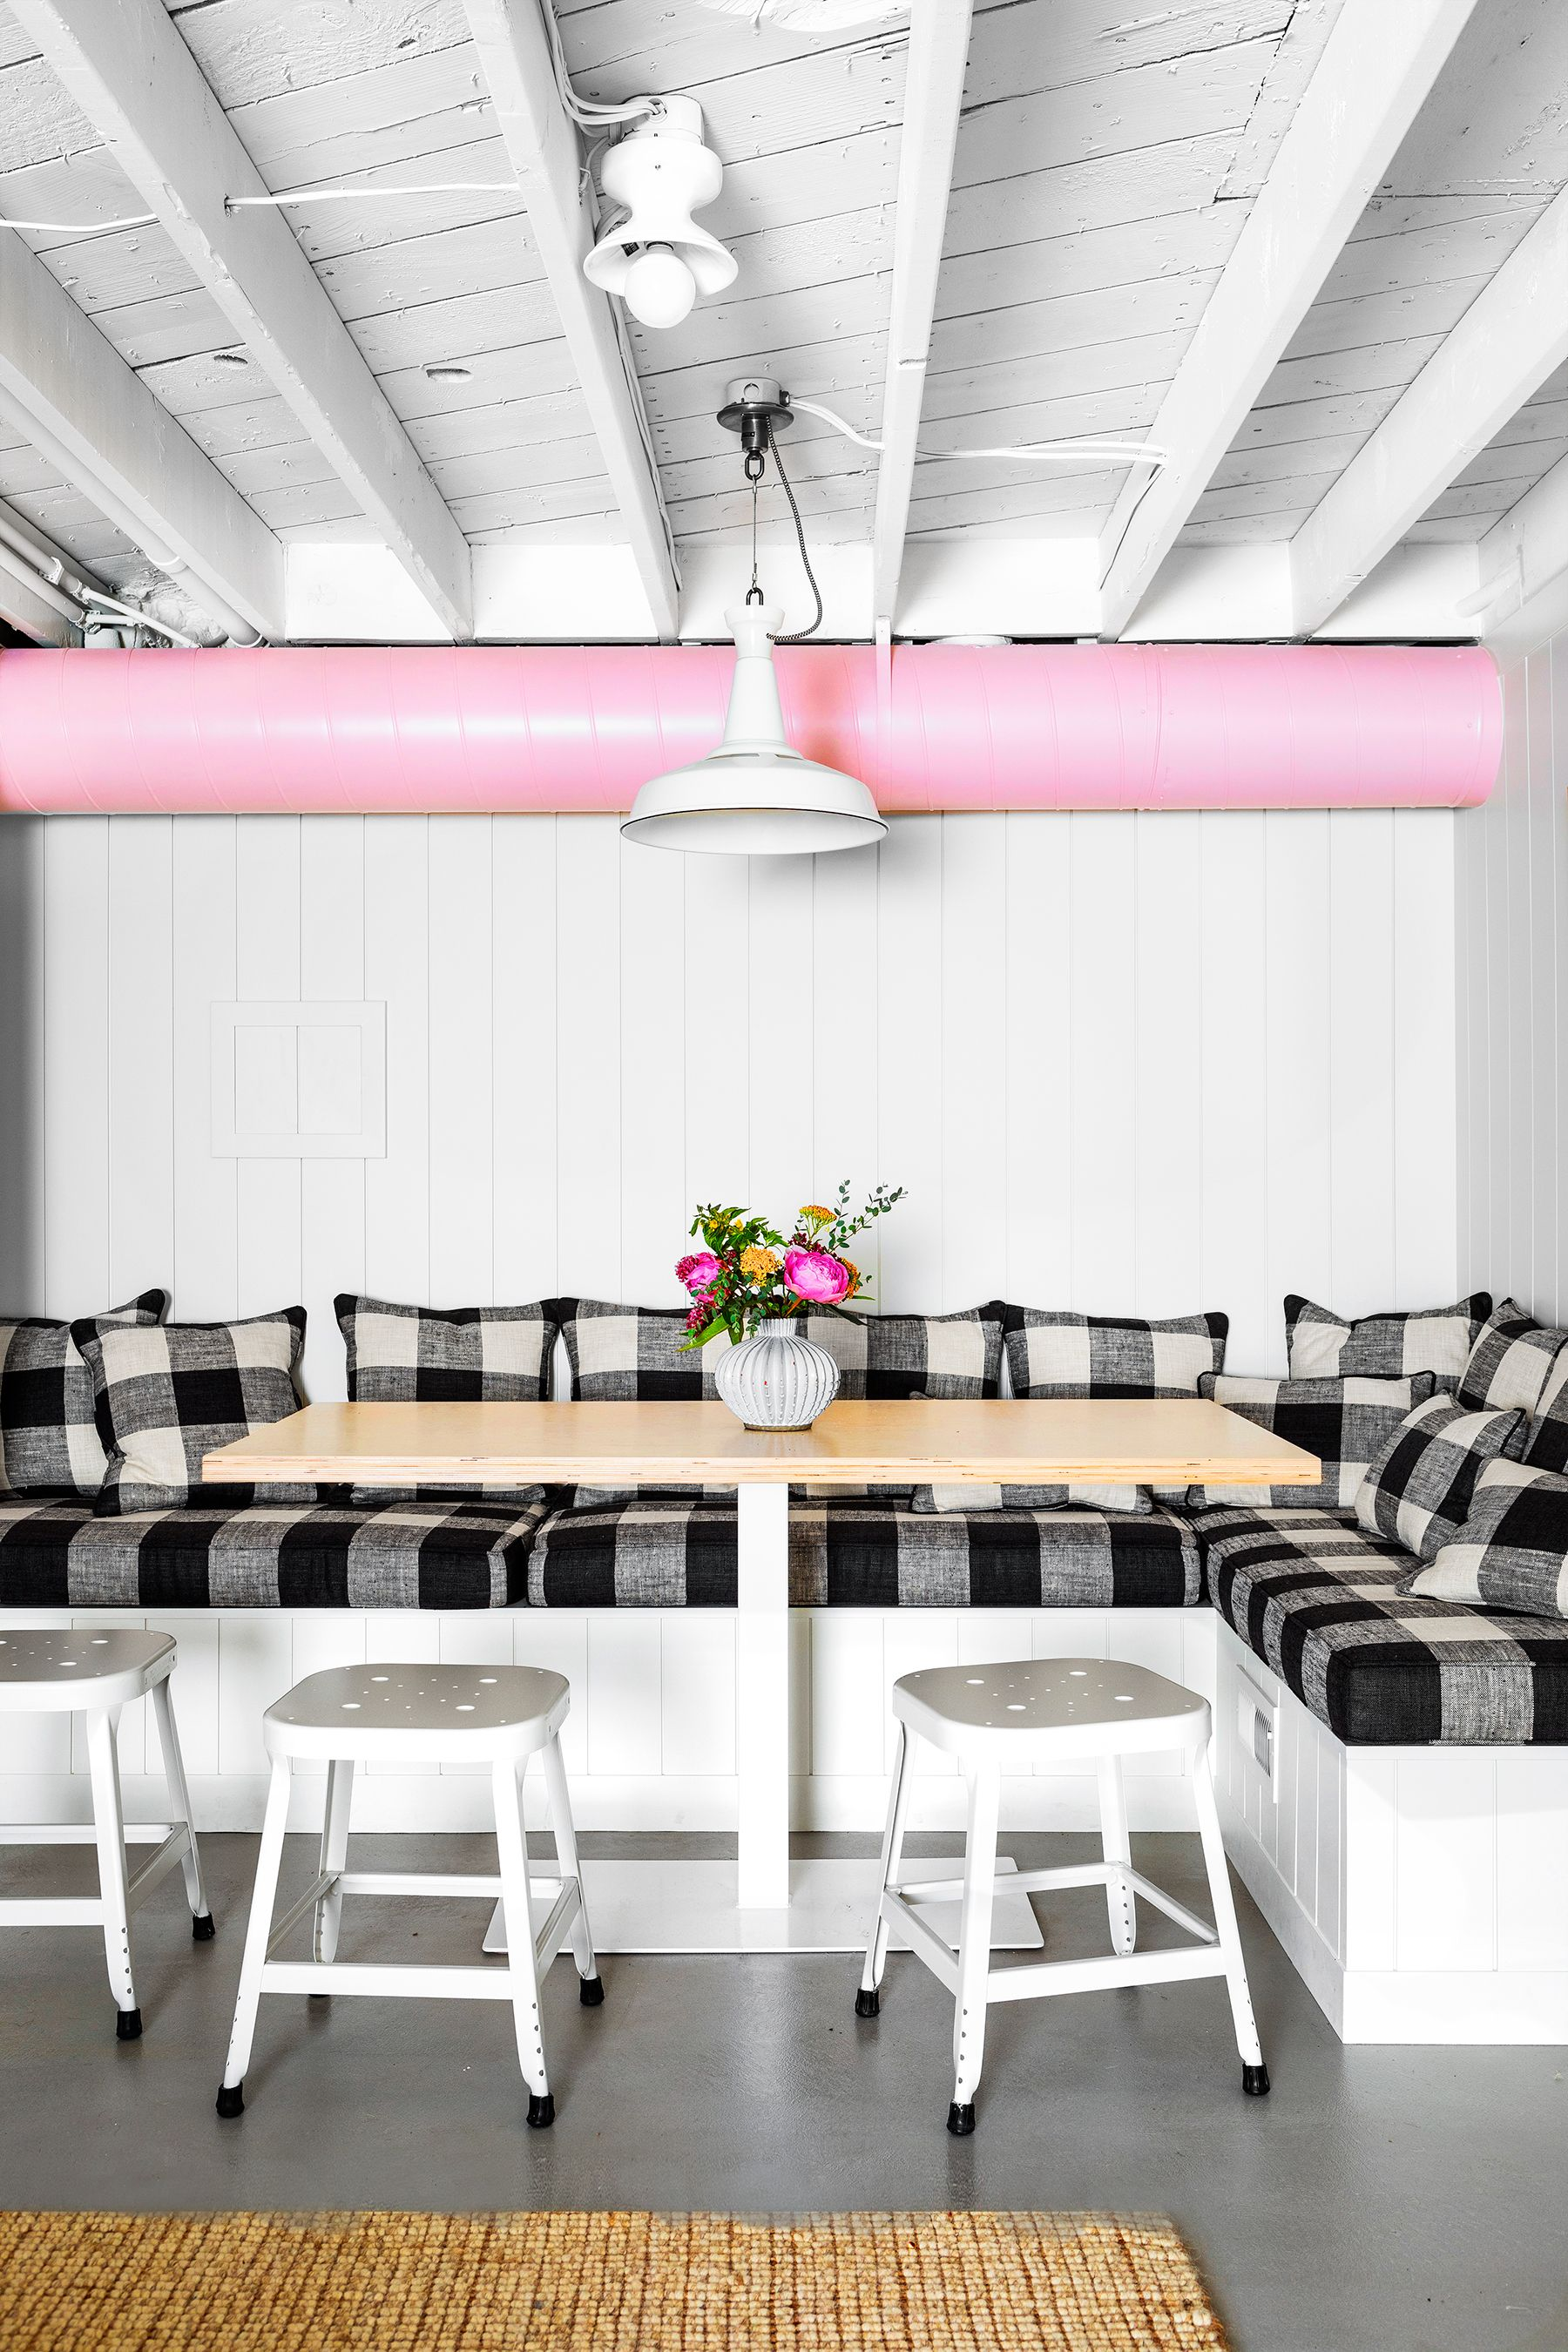 20 Painted Ceilings That Make The Entire Room So Much Cooler,Spring Painting Ideas